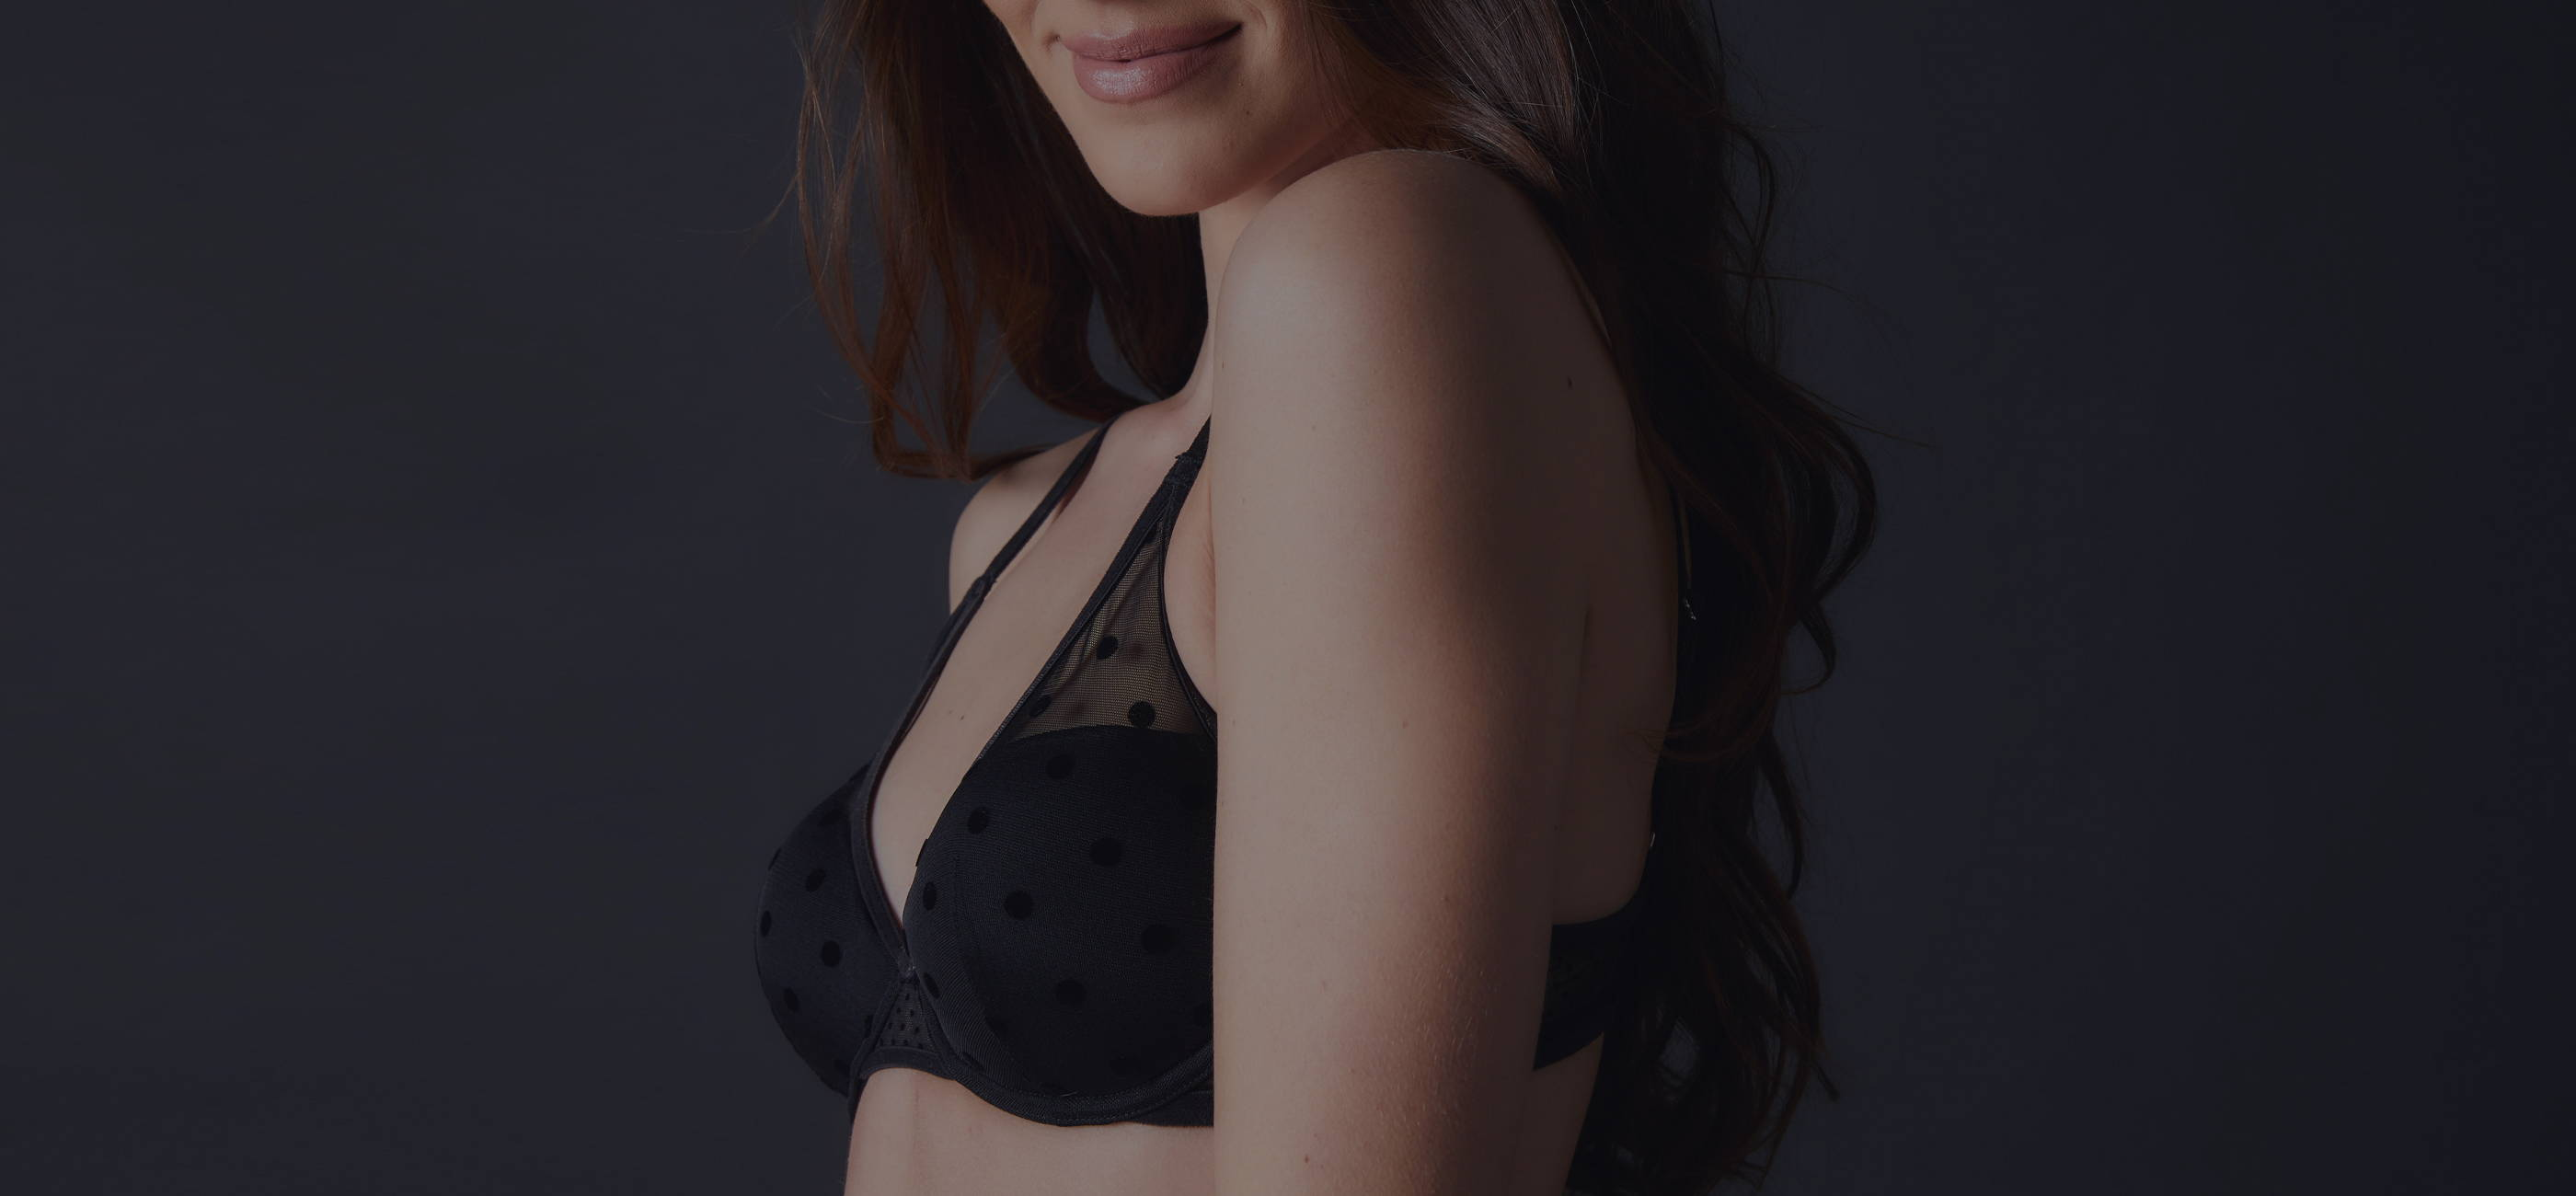 Woman wearing the Journelle Valentina Black polka dot bra that is on sale for 30% off